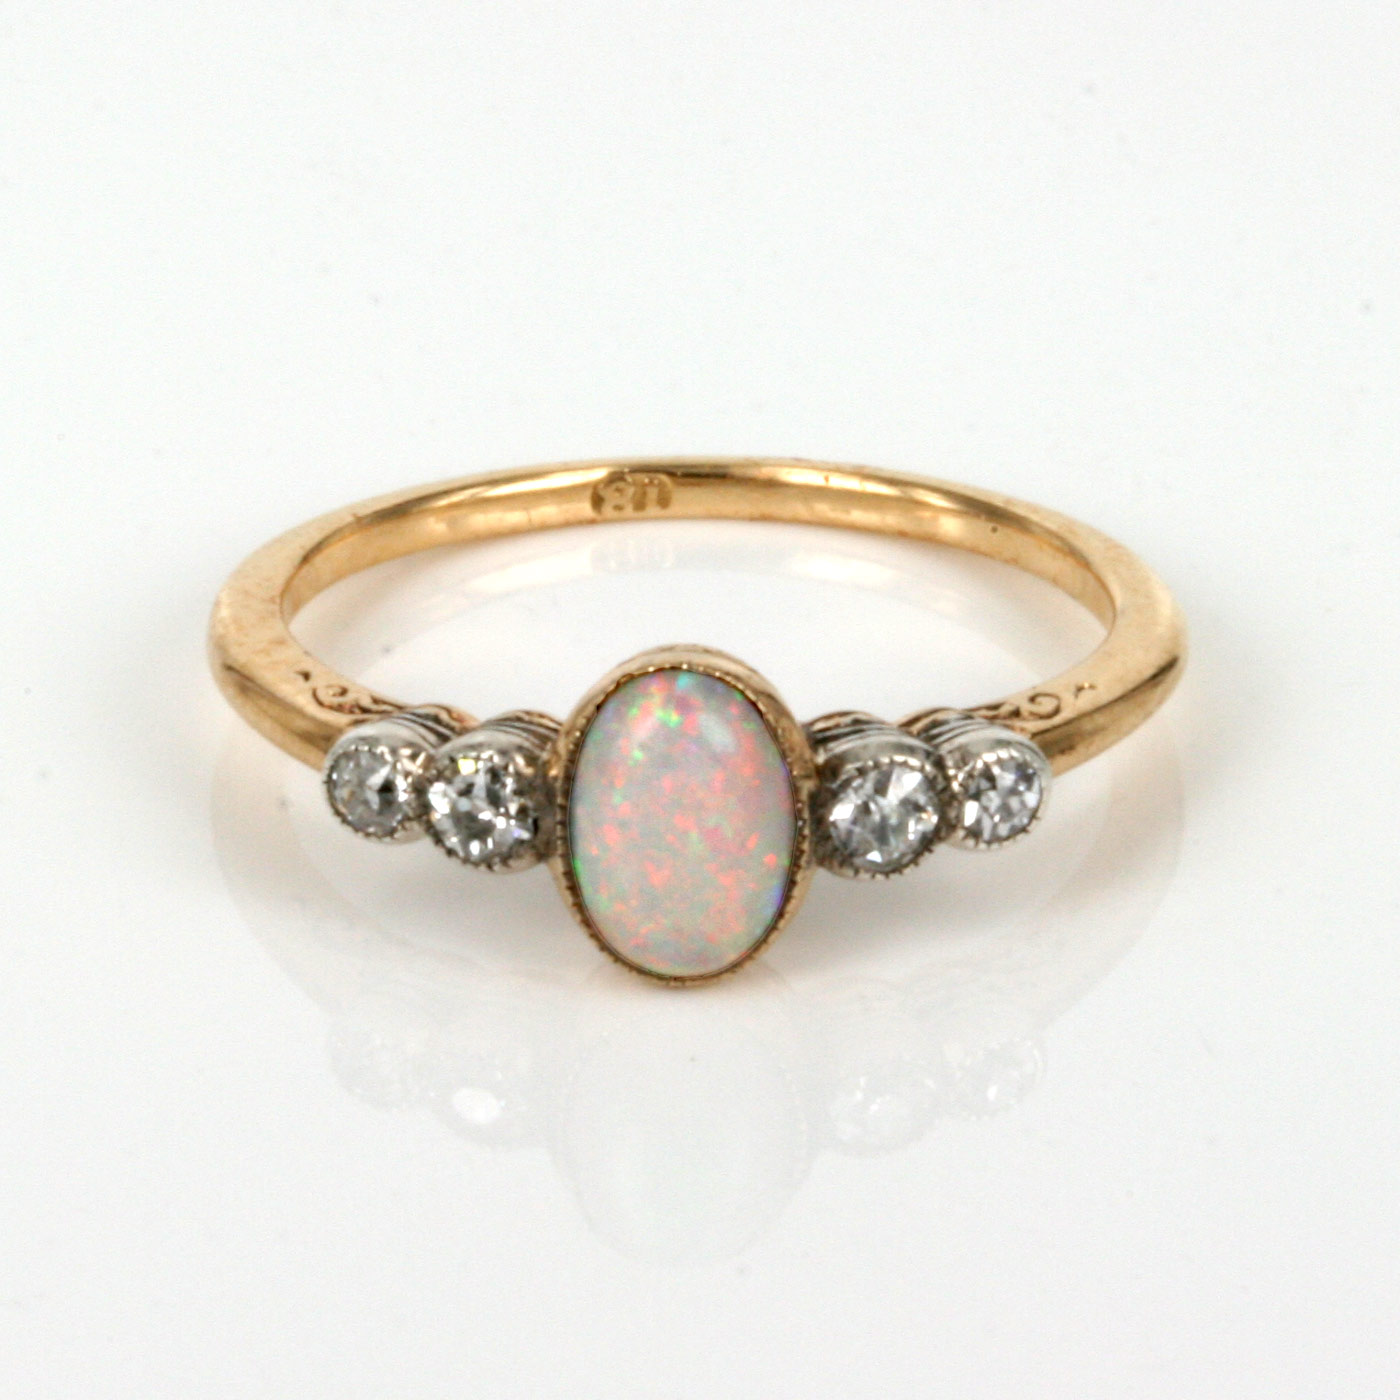 K Gold Opal Ring With Diamonds